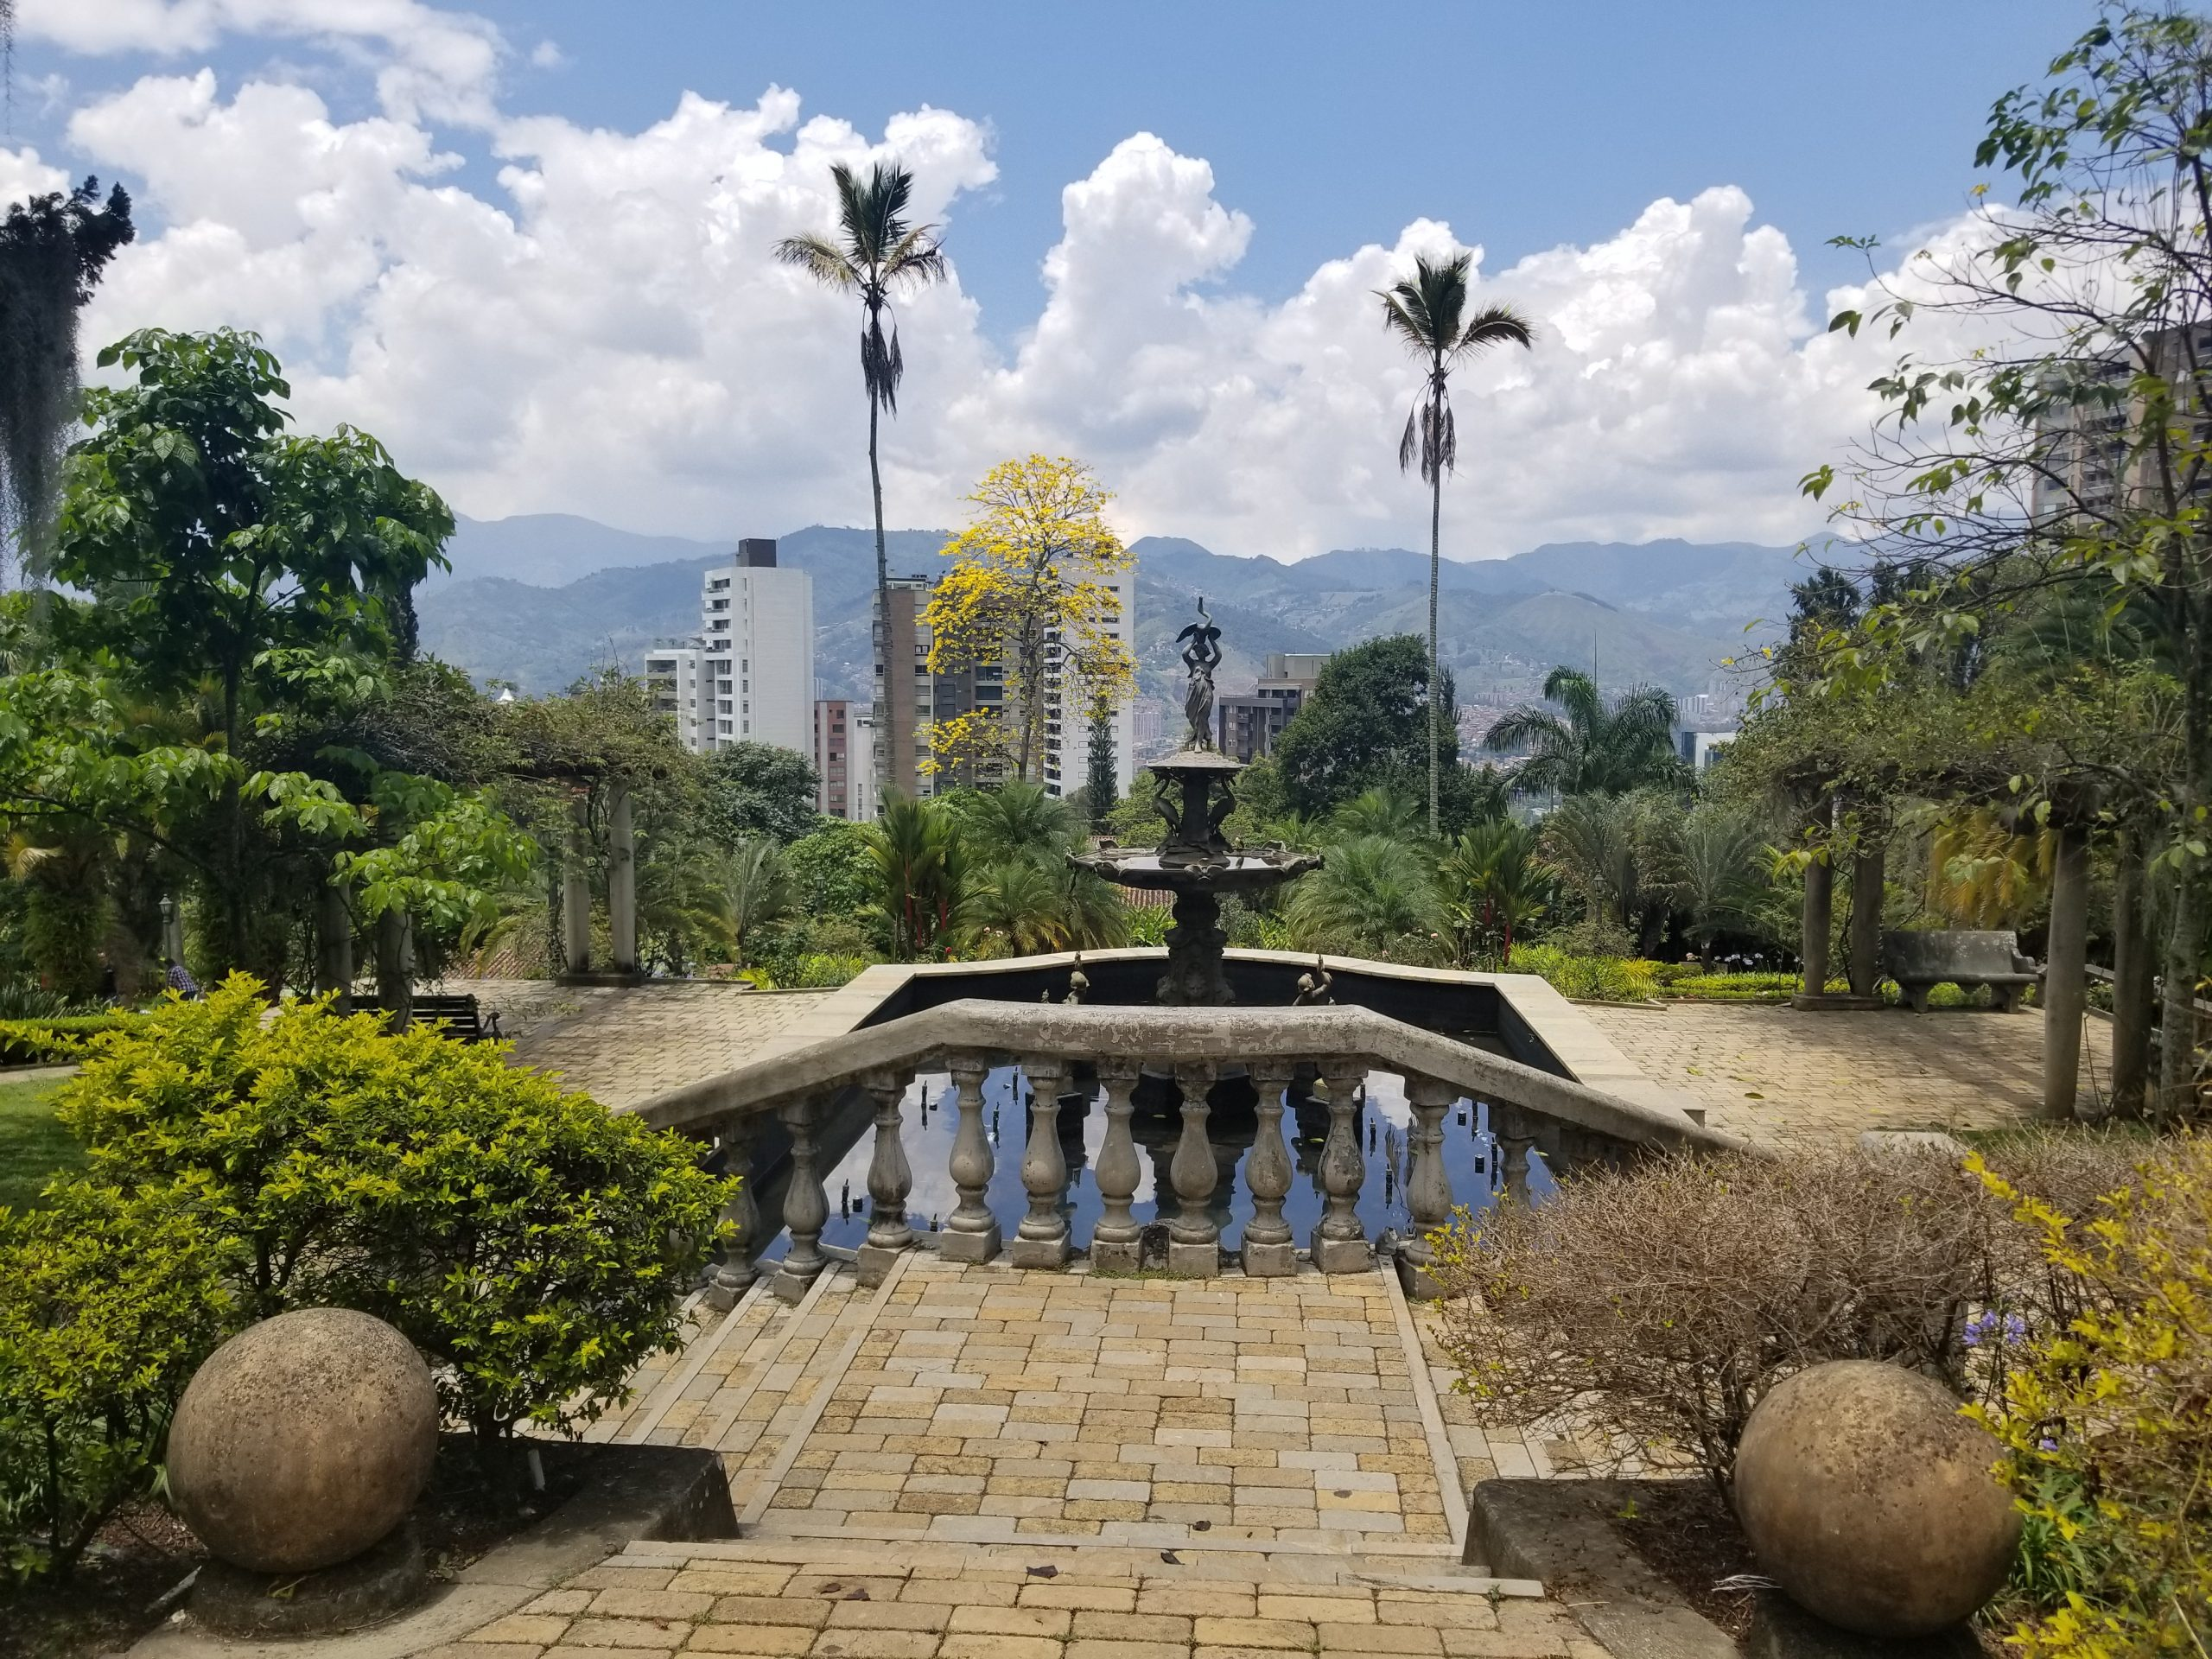 The Top 5 Things To Do in Medellín, Colombia